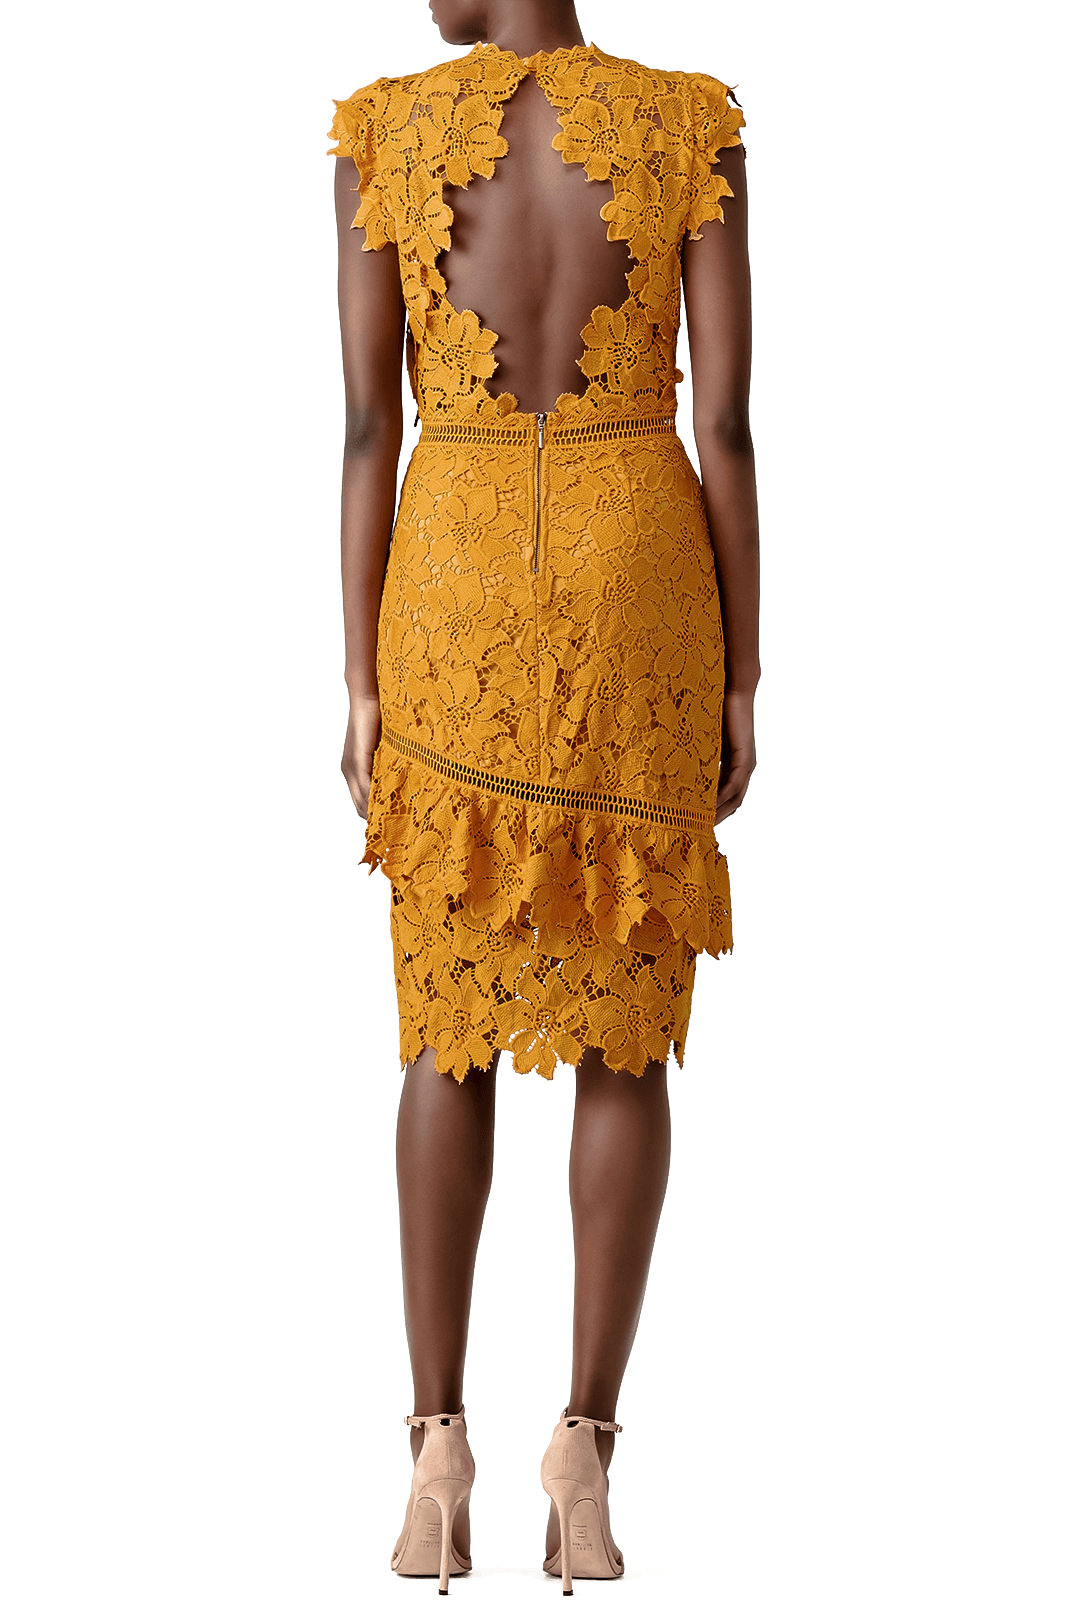 REINE MUSTARD LACE OPEN BACK SLEEVELESS MIDI DRESS